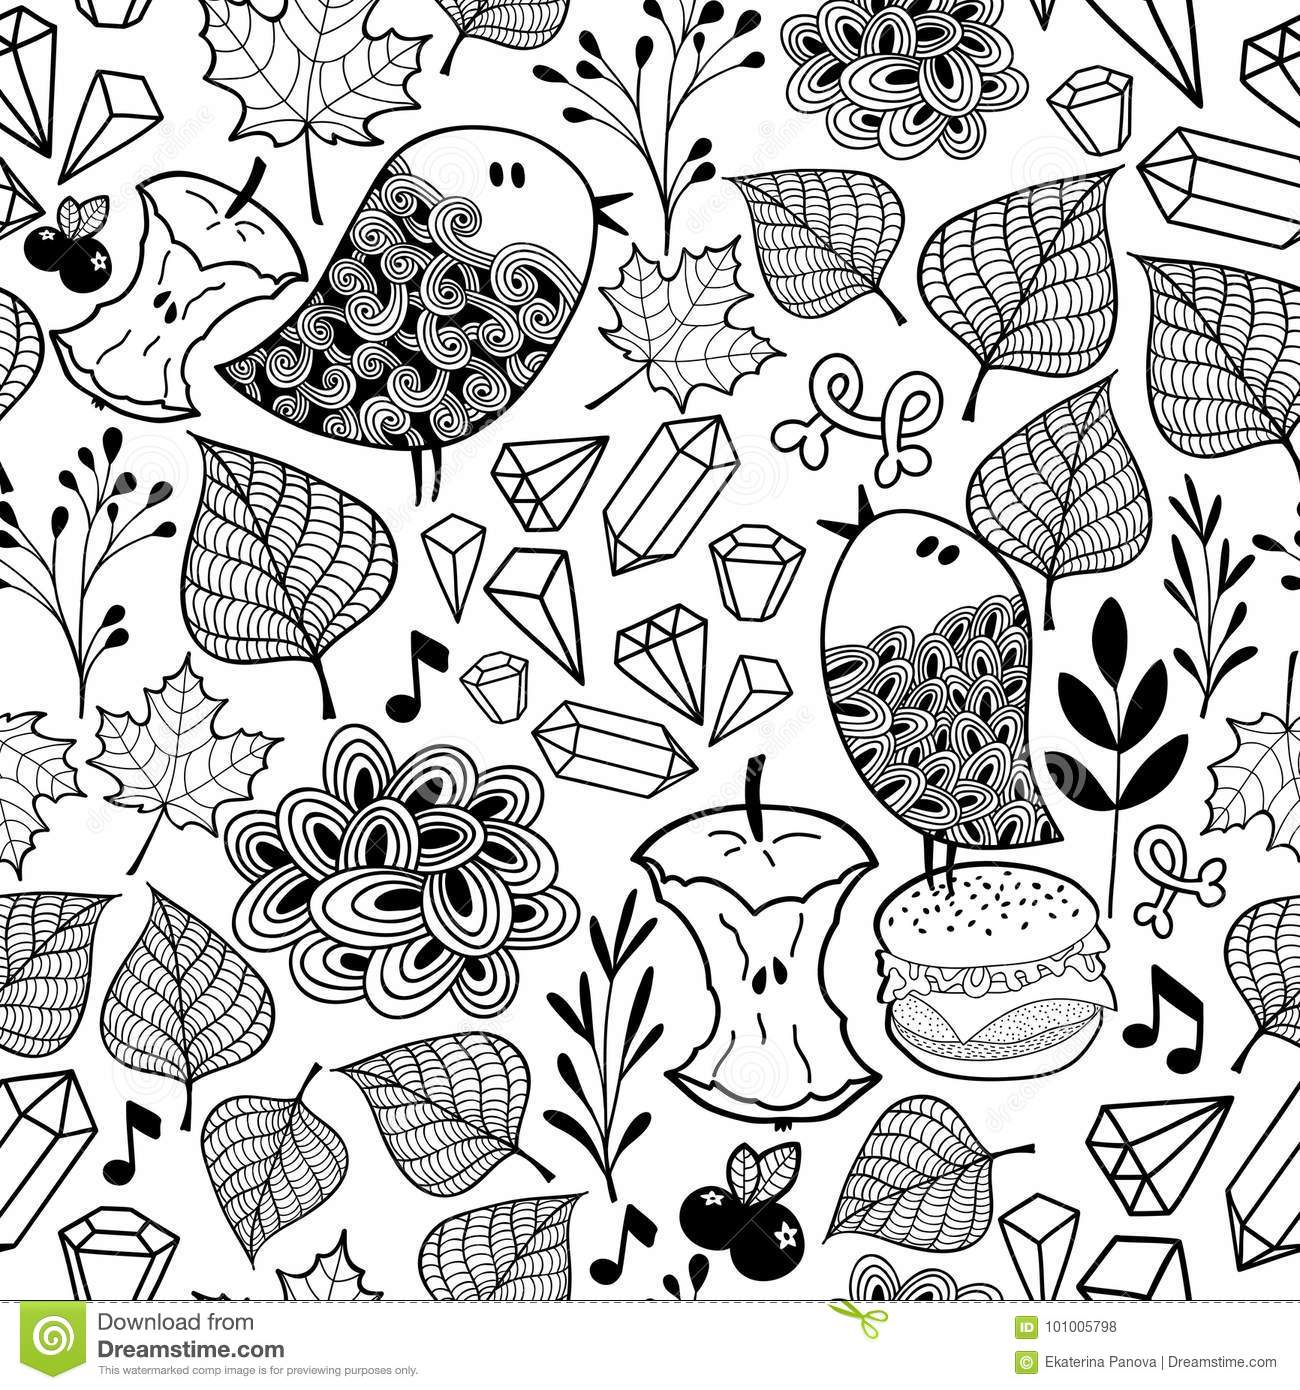 Black And White Endless Wallpaper With Cute Birds And Doodle Plants